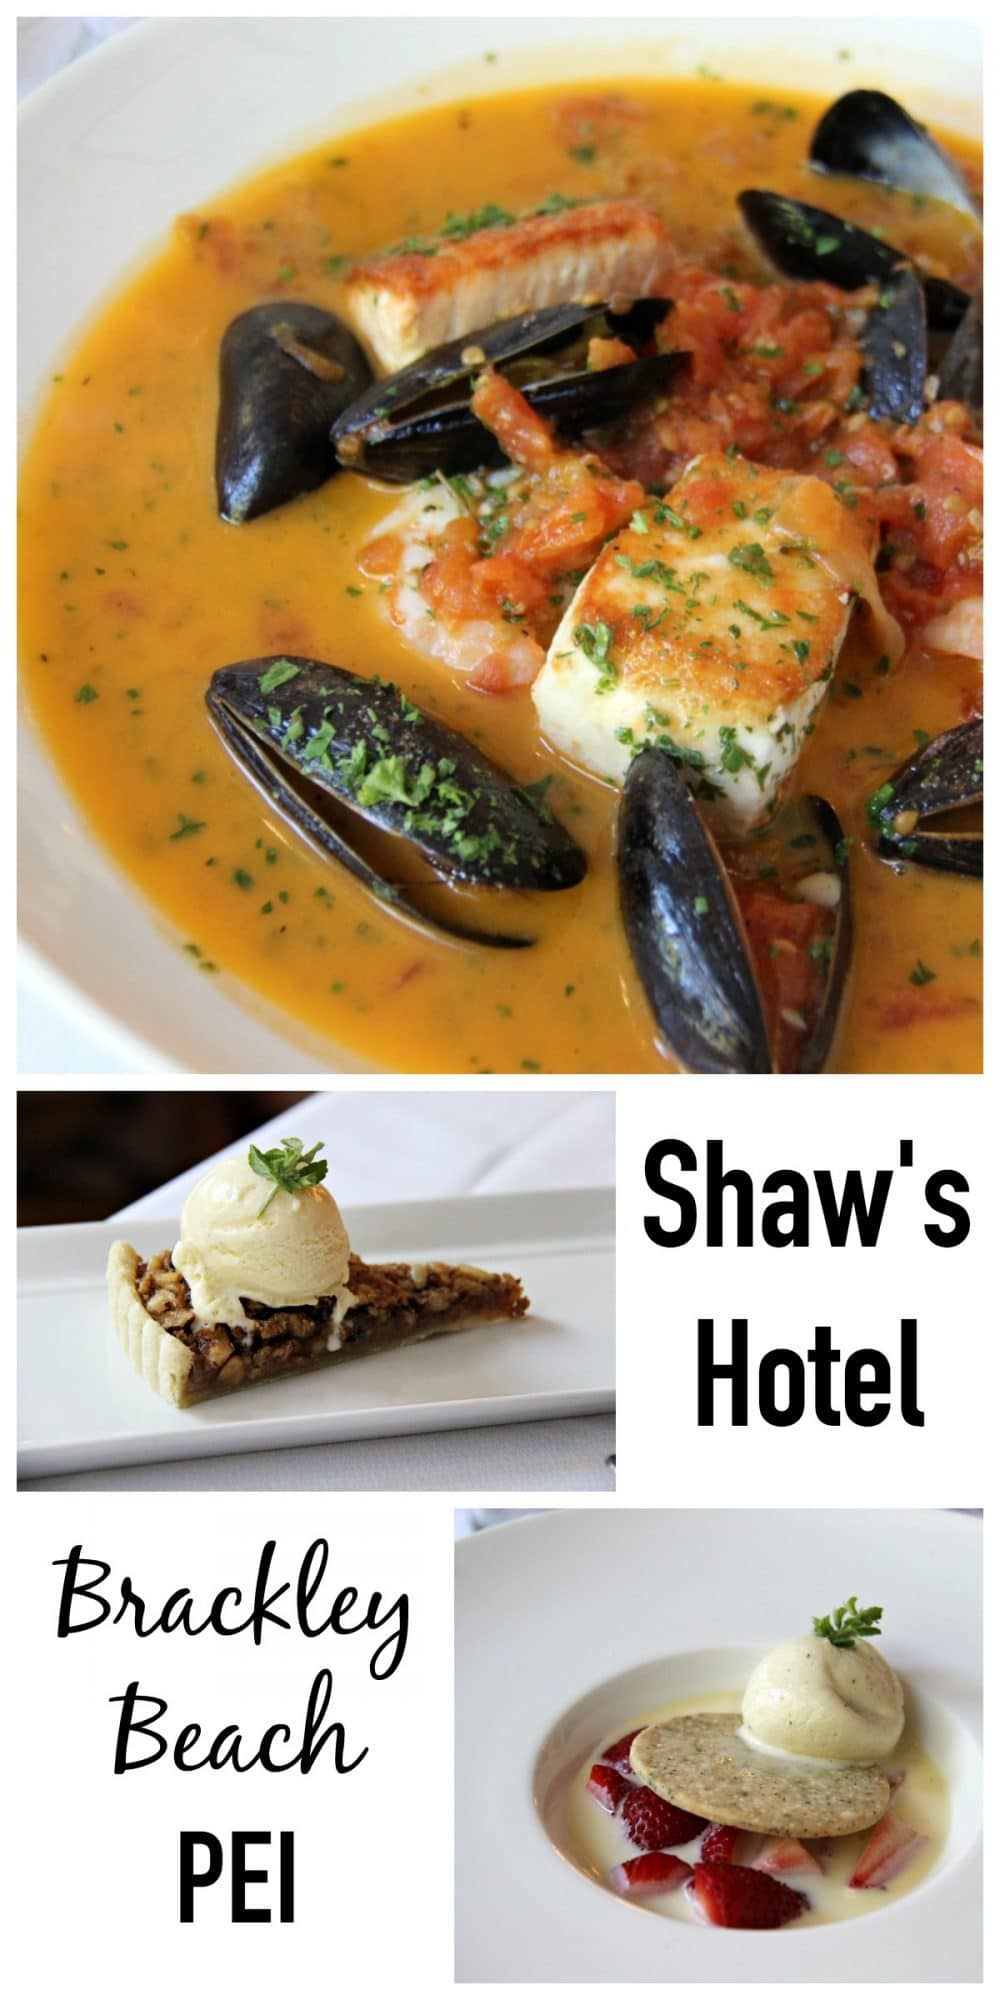 Dining at Shaw's Hotel